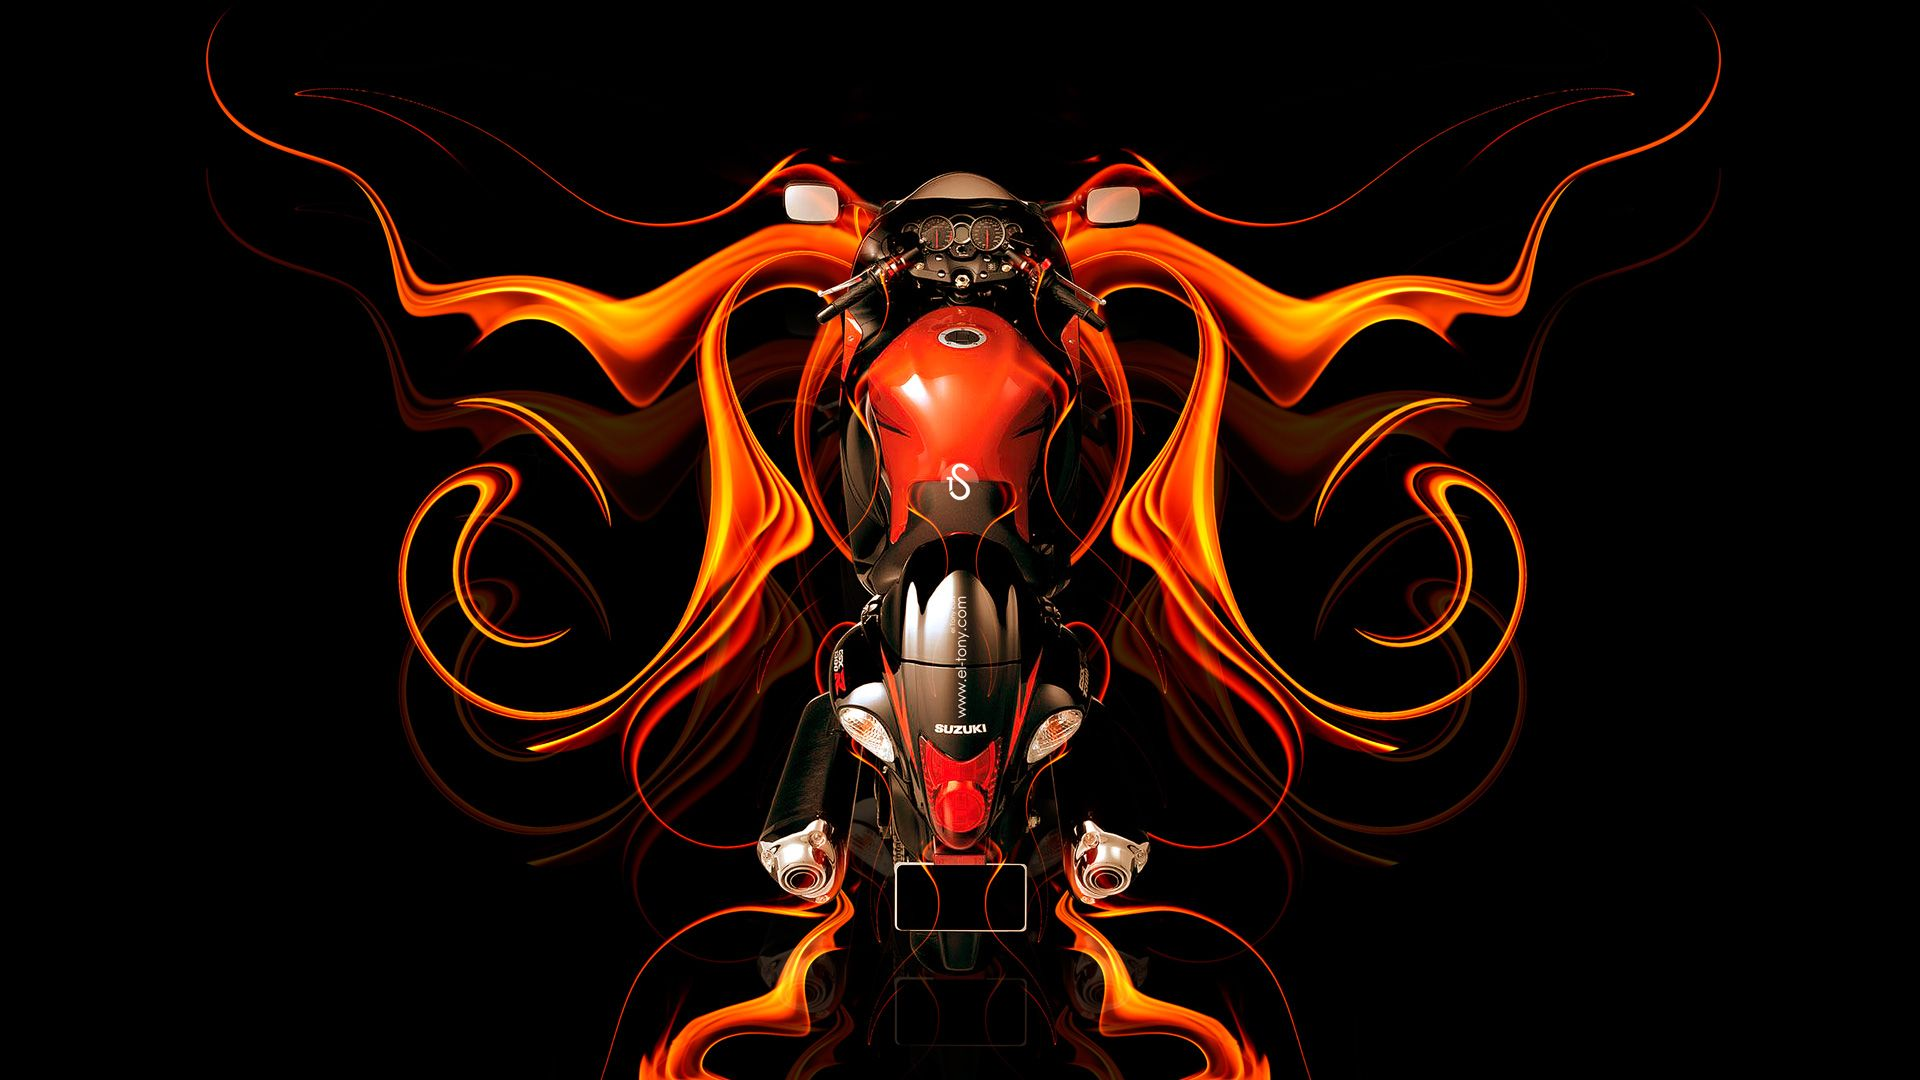 Charmant Moto Suzuki Hayabusa BackUp Super Fire Abstract Bike